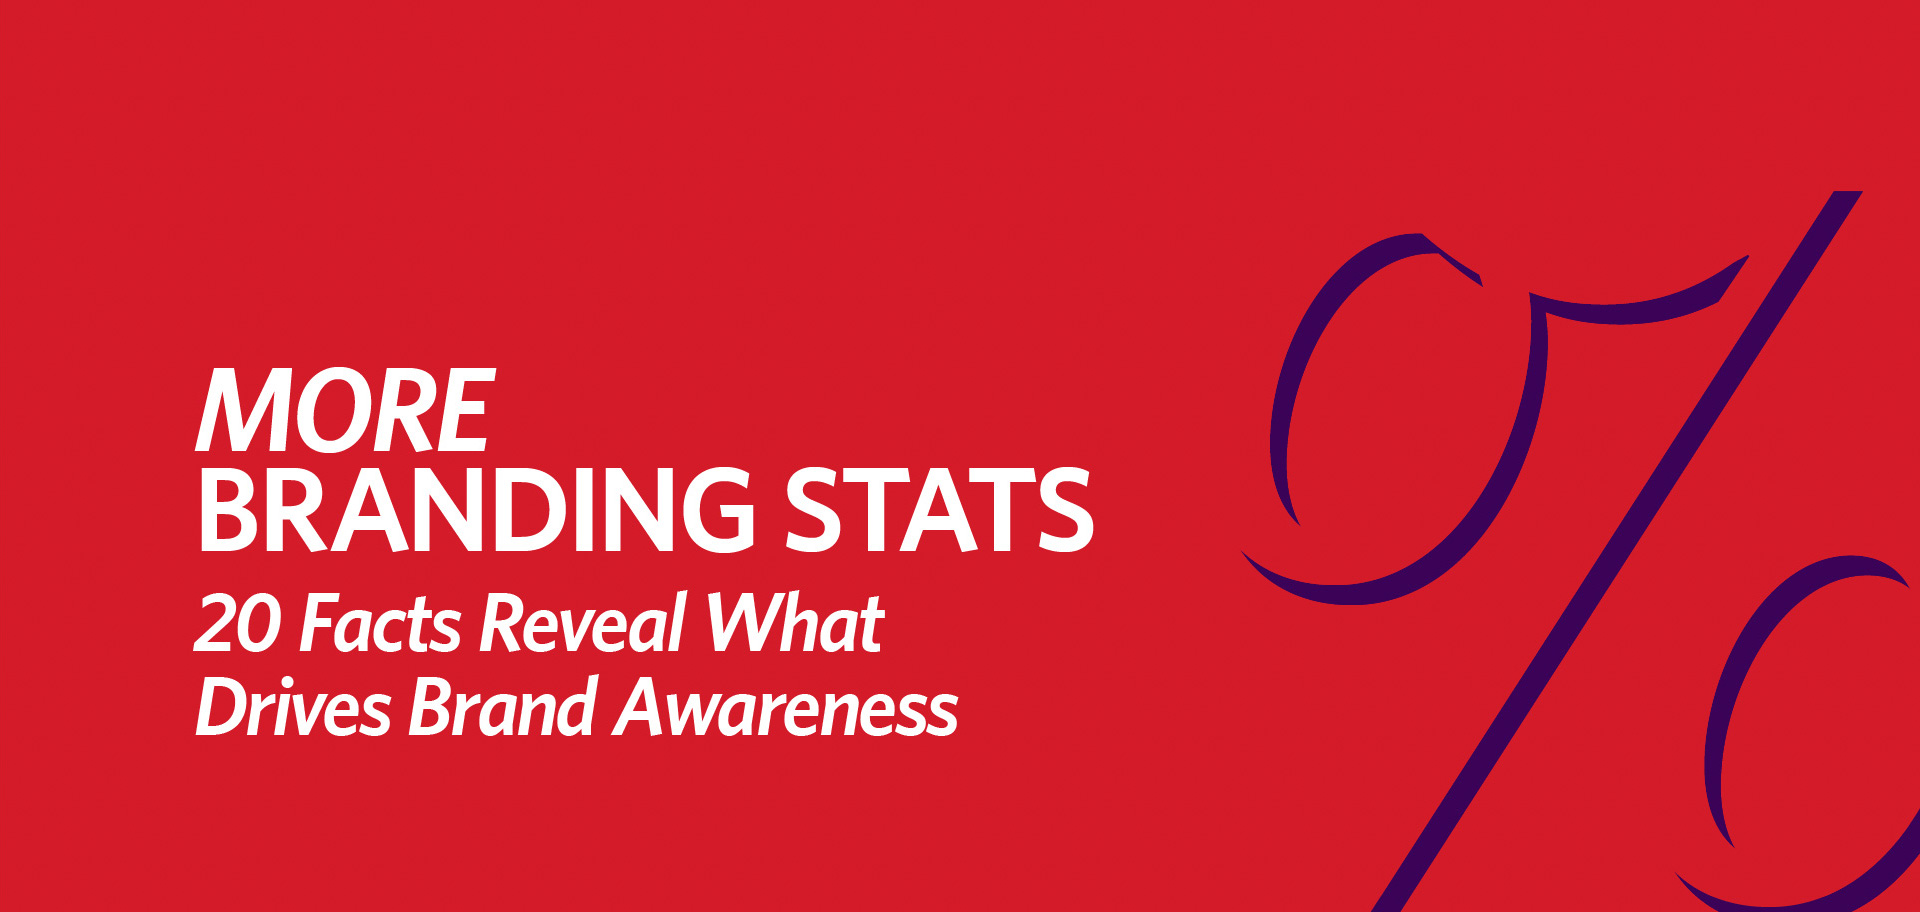 More Branding Stats: 20 Facts Reveal What Drive Brand Awareness by Kettle Fire Creative (cover image) branding More Branding Stats: 20 Facts Reveal What Drives Brand Awareness more branding stats fi